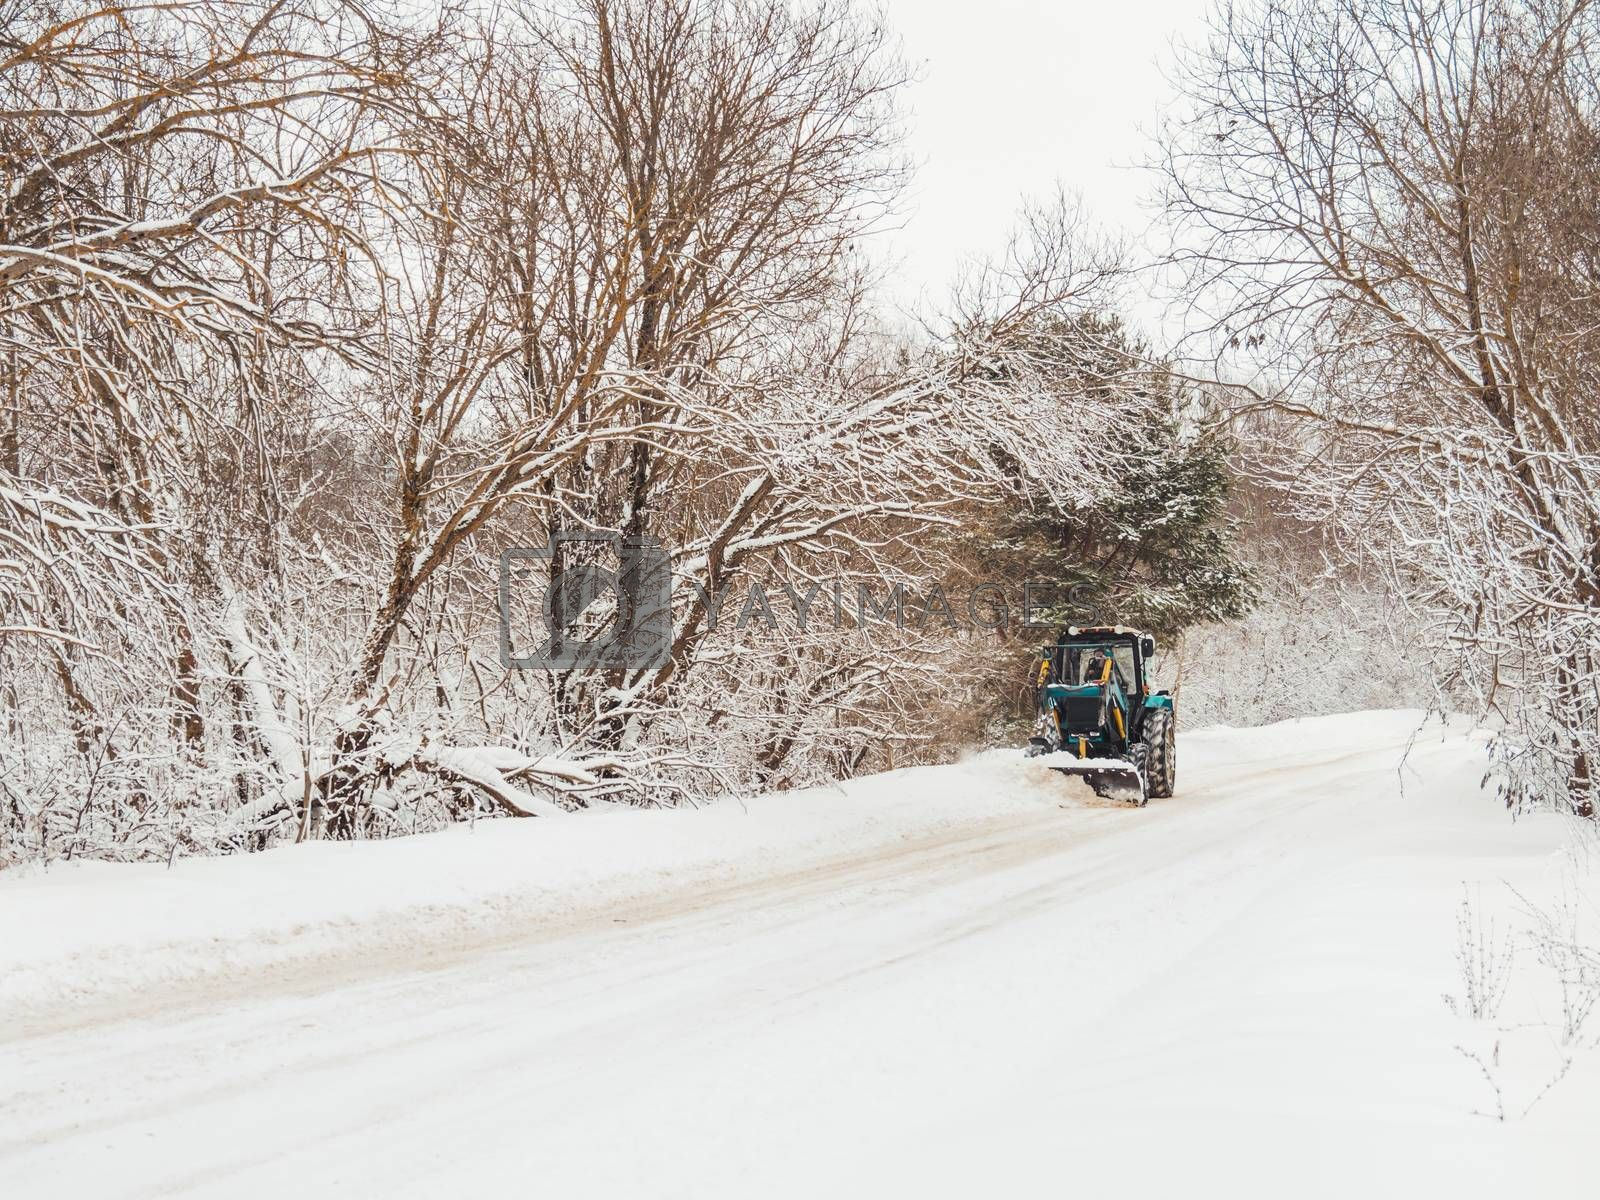 Snowplow clears rural road of snow debris after heavy snowstorm. Winter natural background with trees and country road under snow. Countryside landscape.